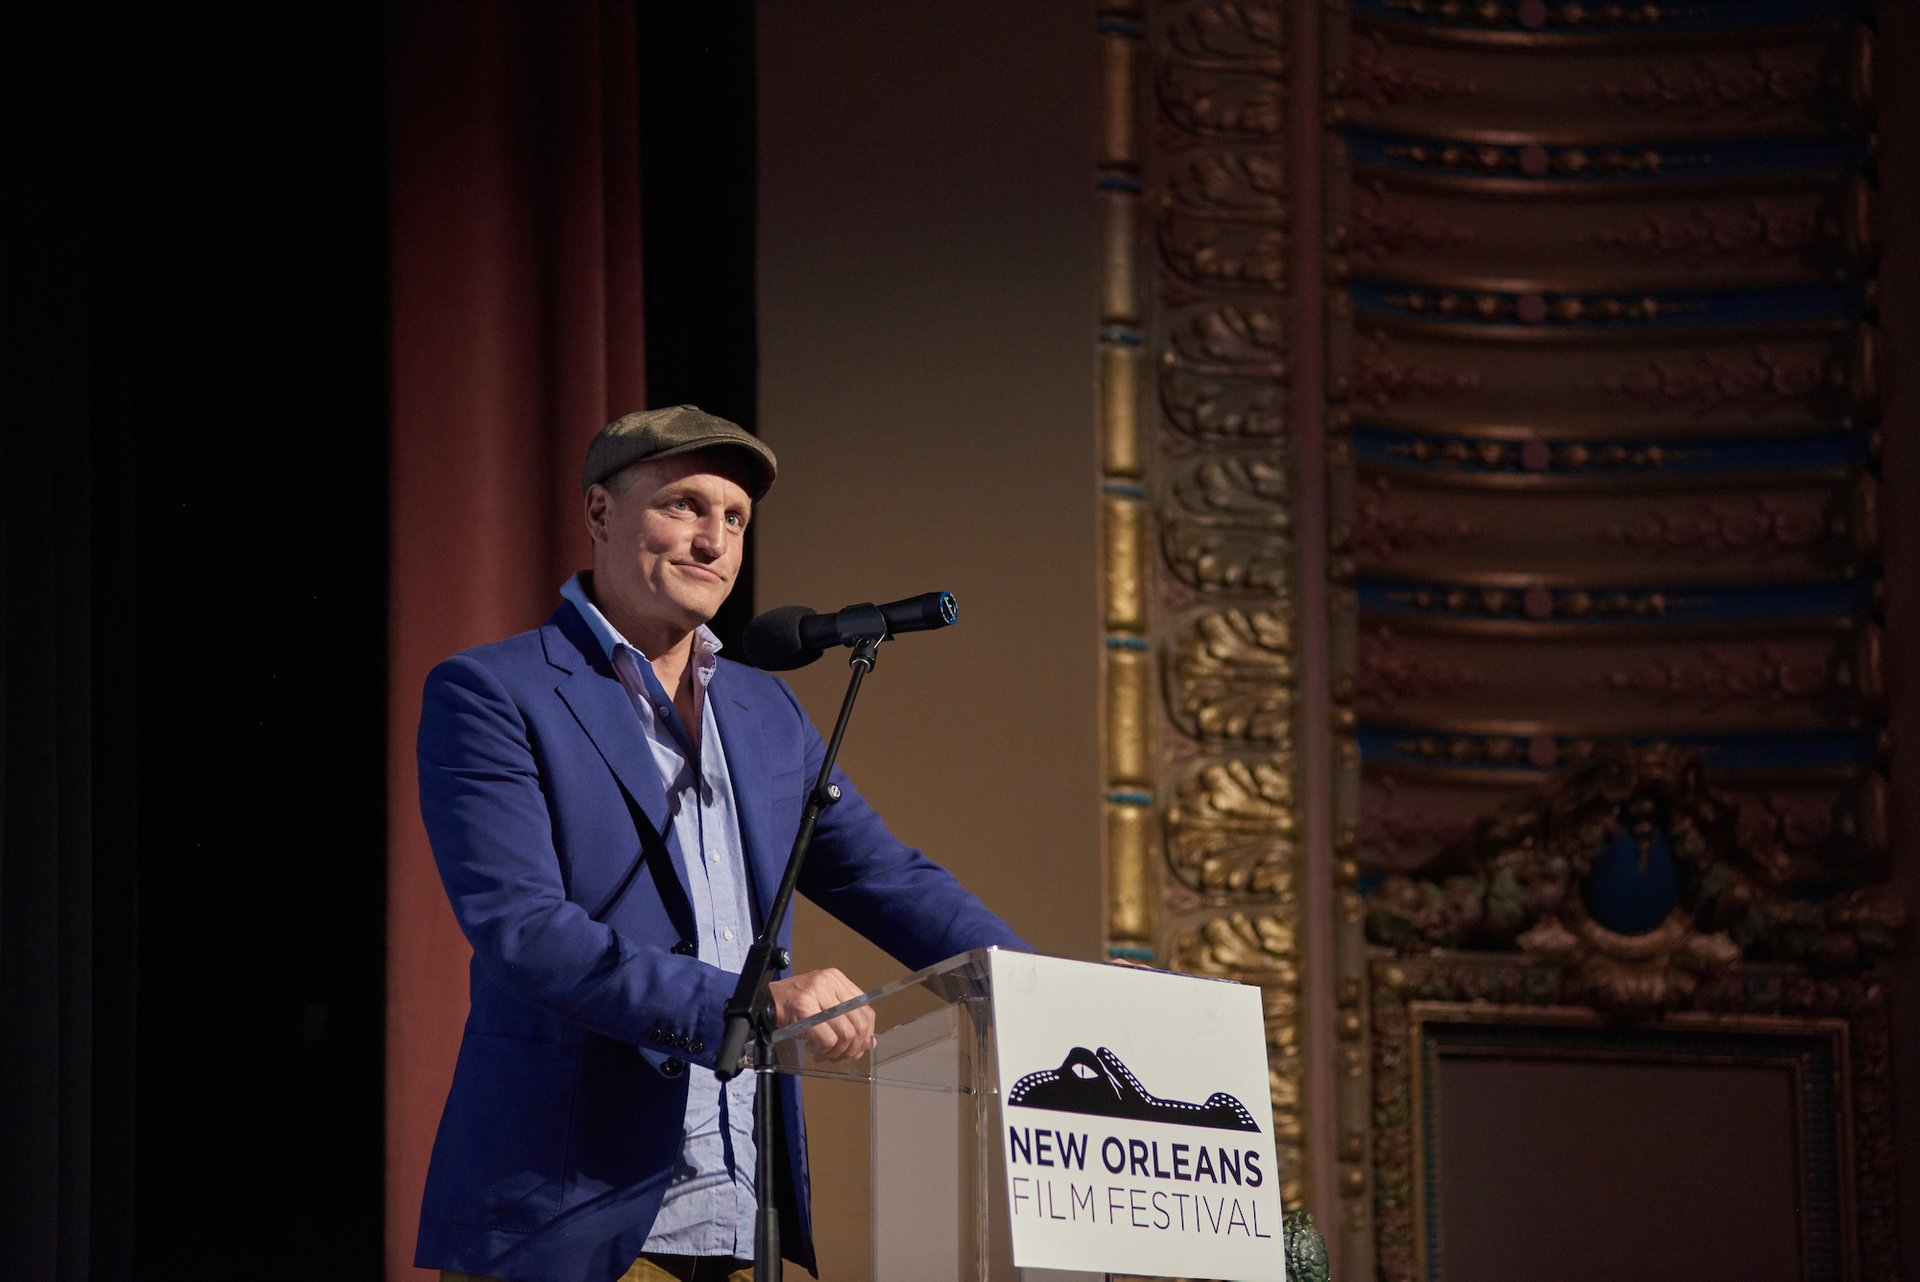 New Orleans Film Festival in New Orleans 2020 - Best Time